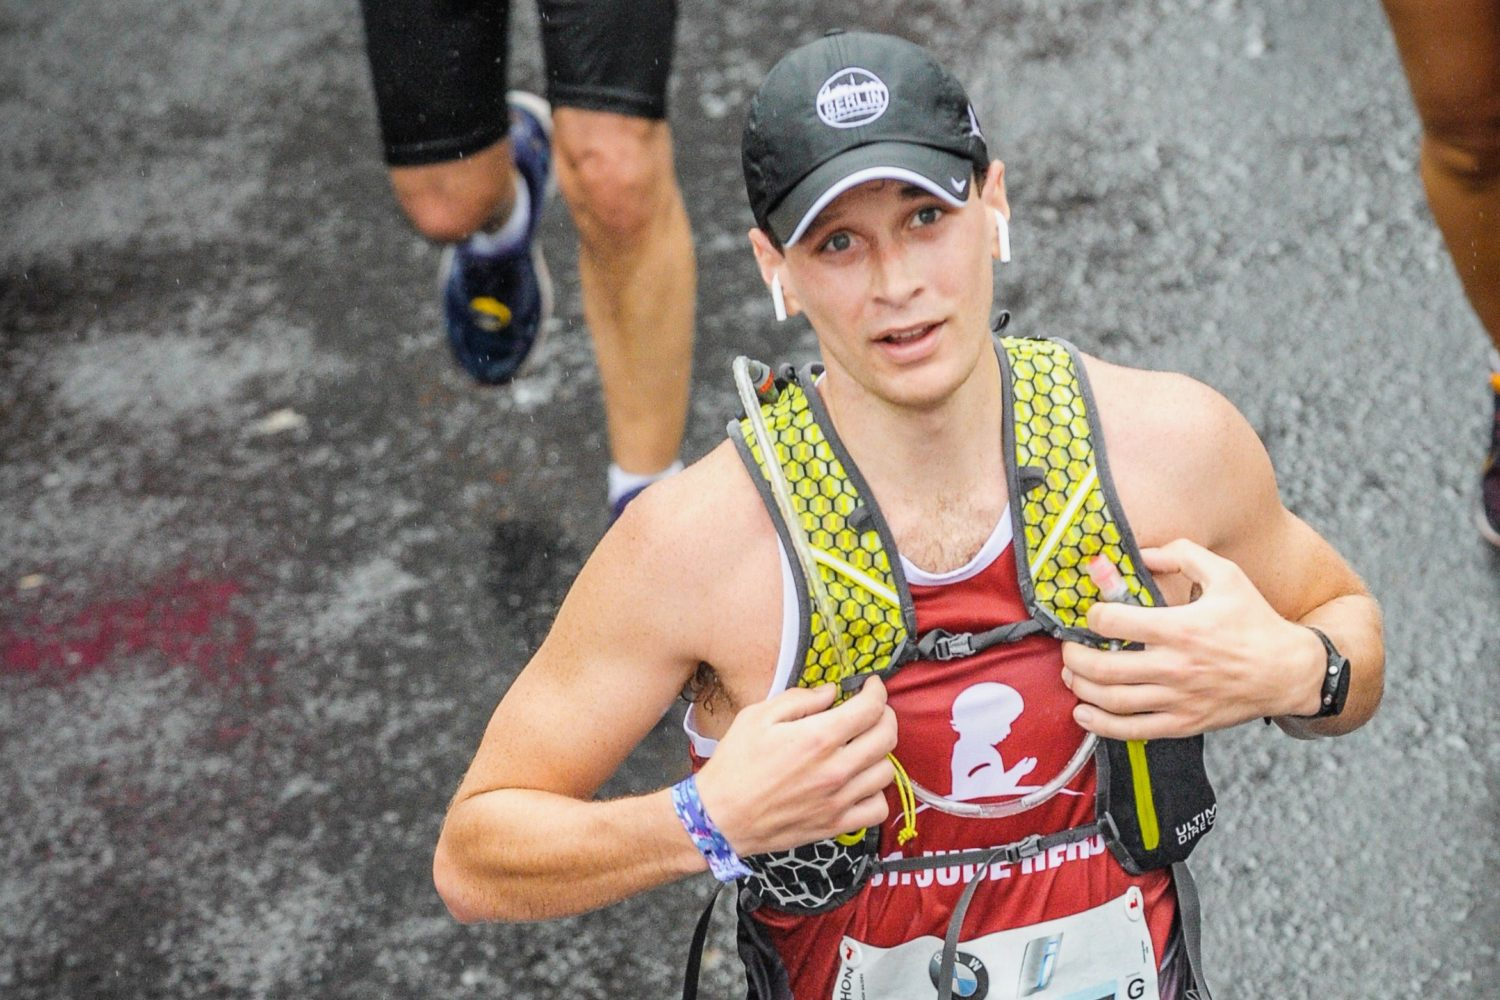 Former St. Jude patient turned marathoner shares message of hope and healing